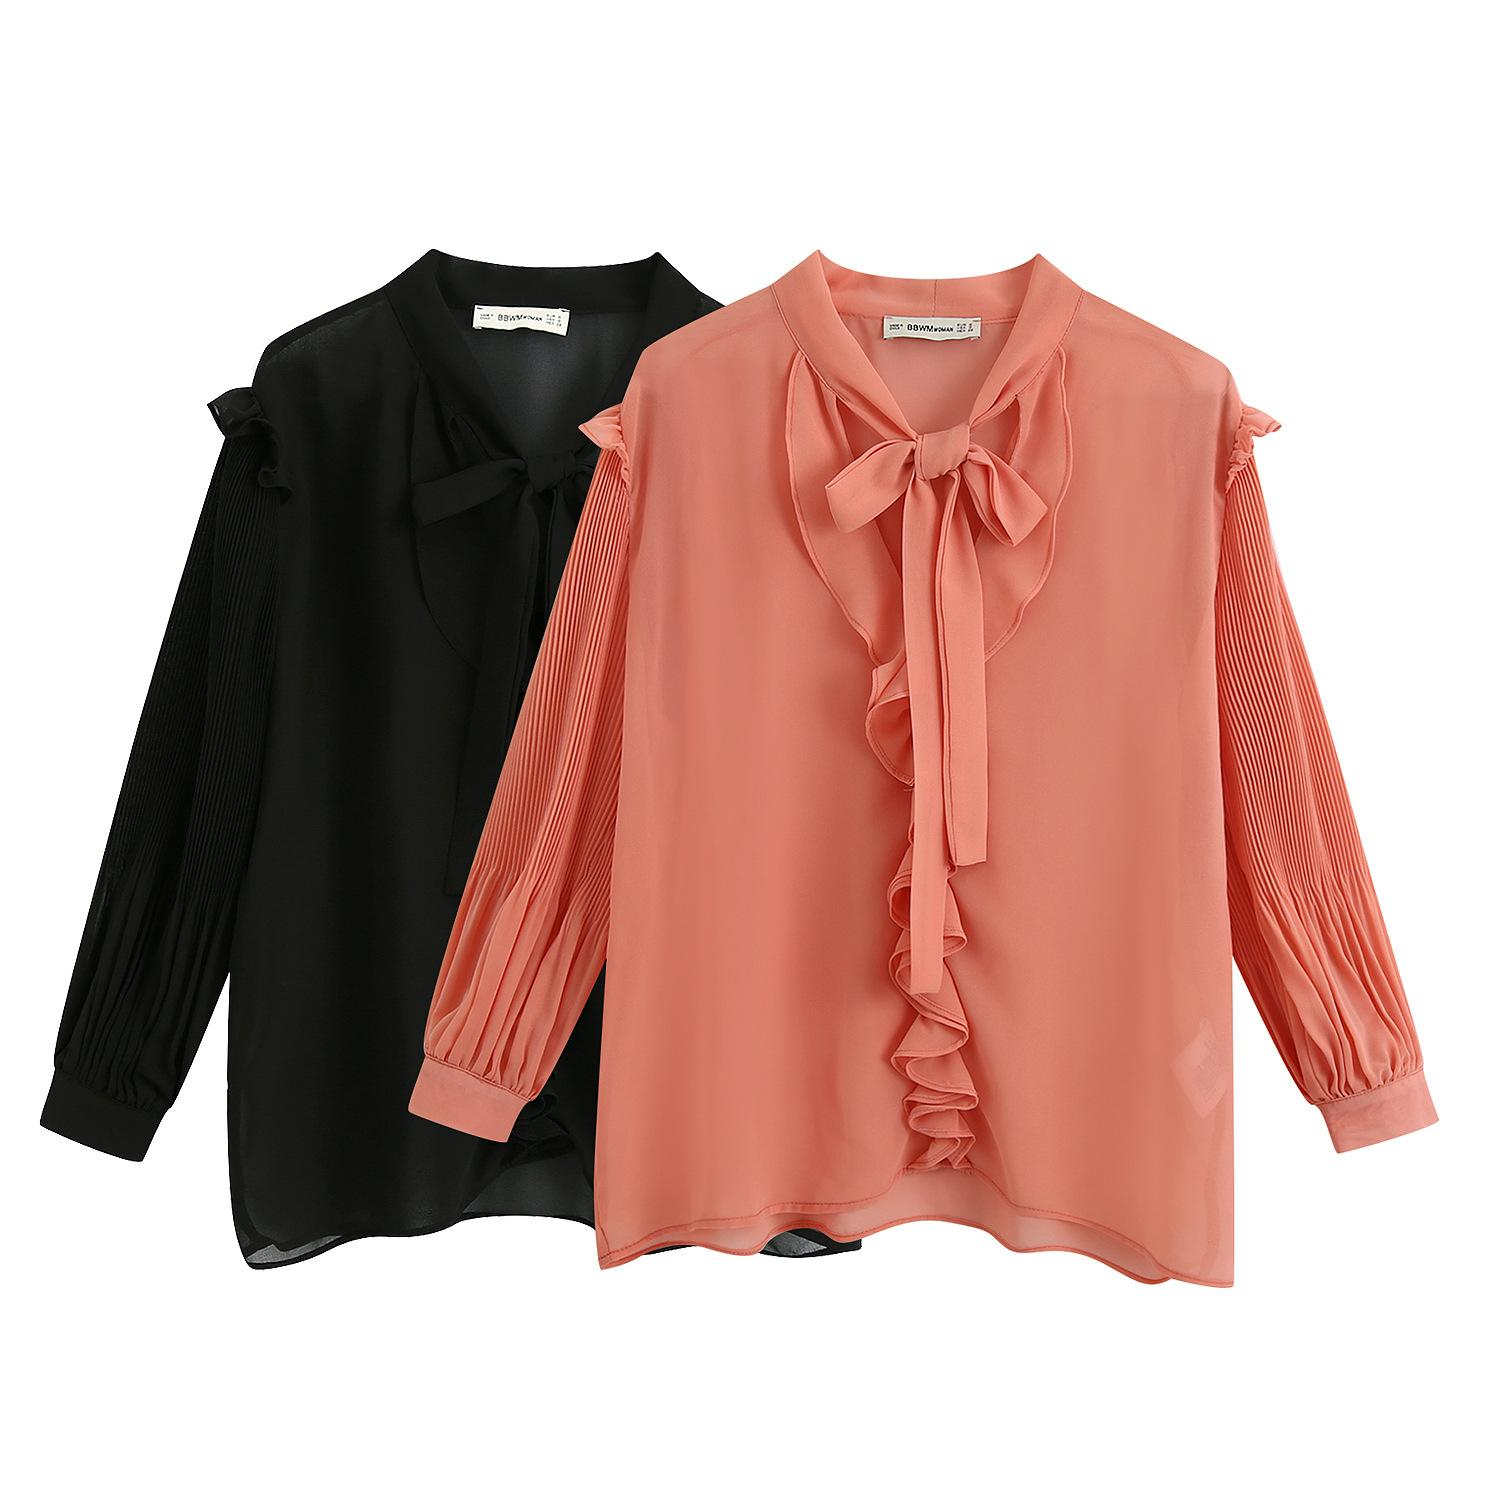 Women Sexy Bow Tied Collar Fashion Casual Chiffon Blouse Shirts 2020 New Work Office Business Long Sleeve Shirts Chic Tiered Decorate Tops